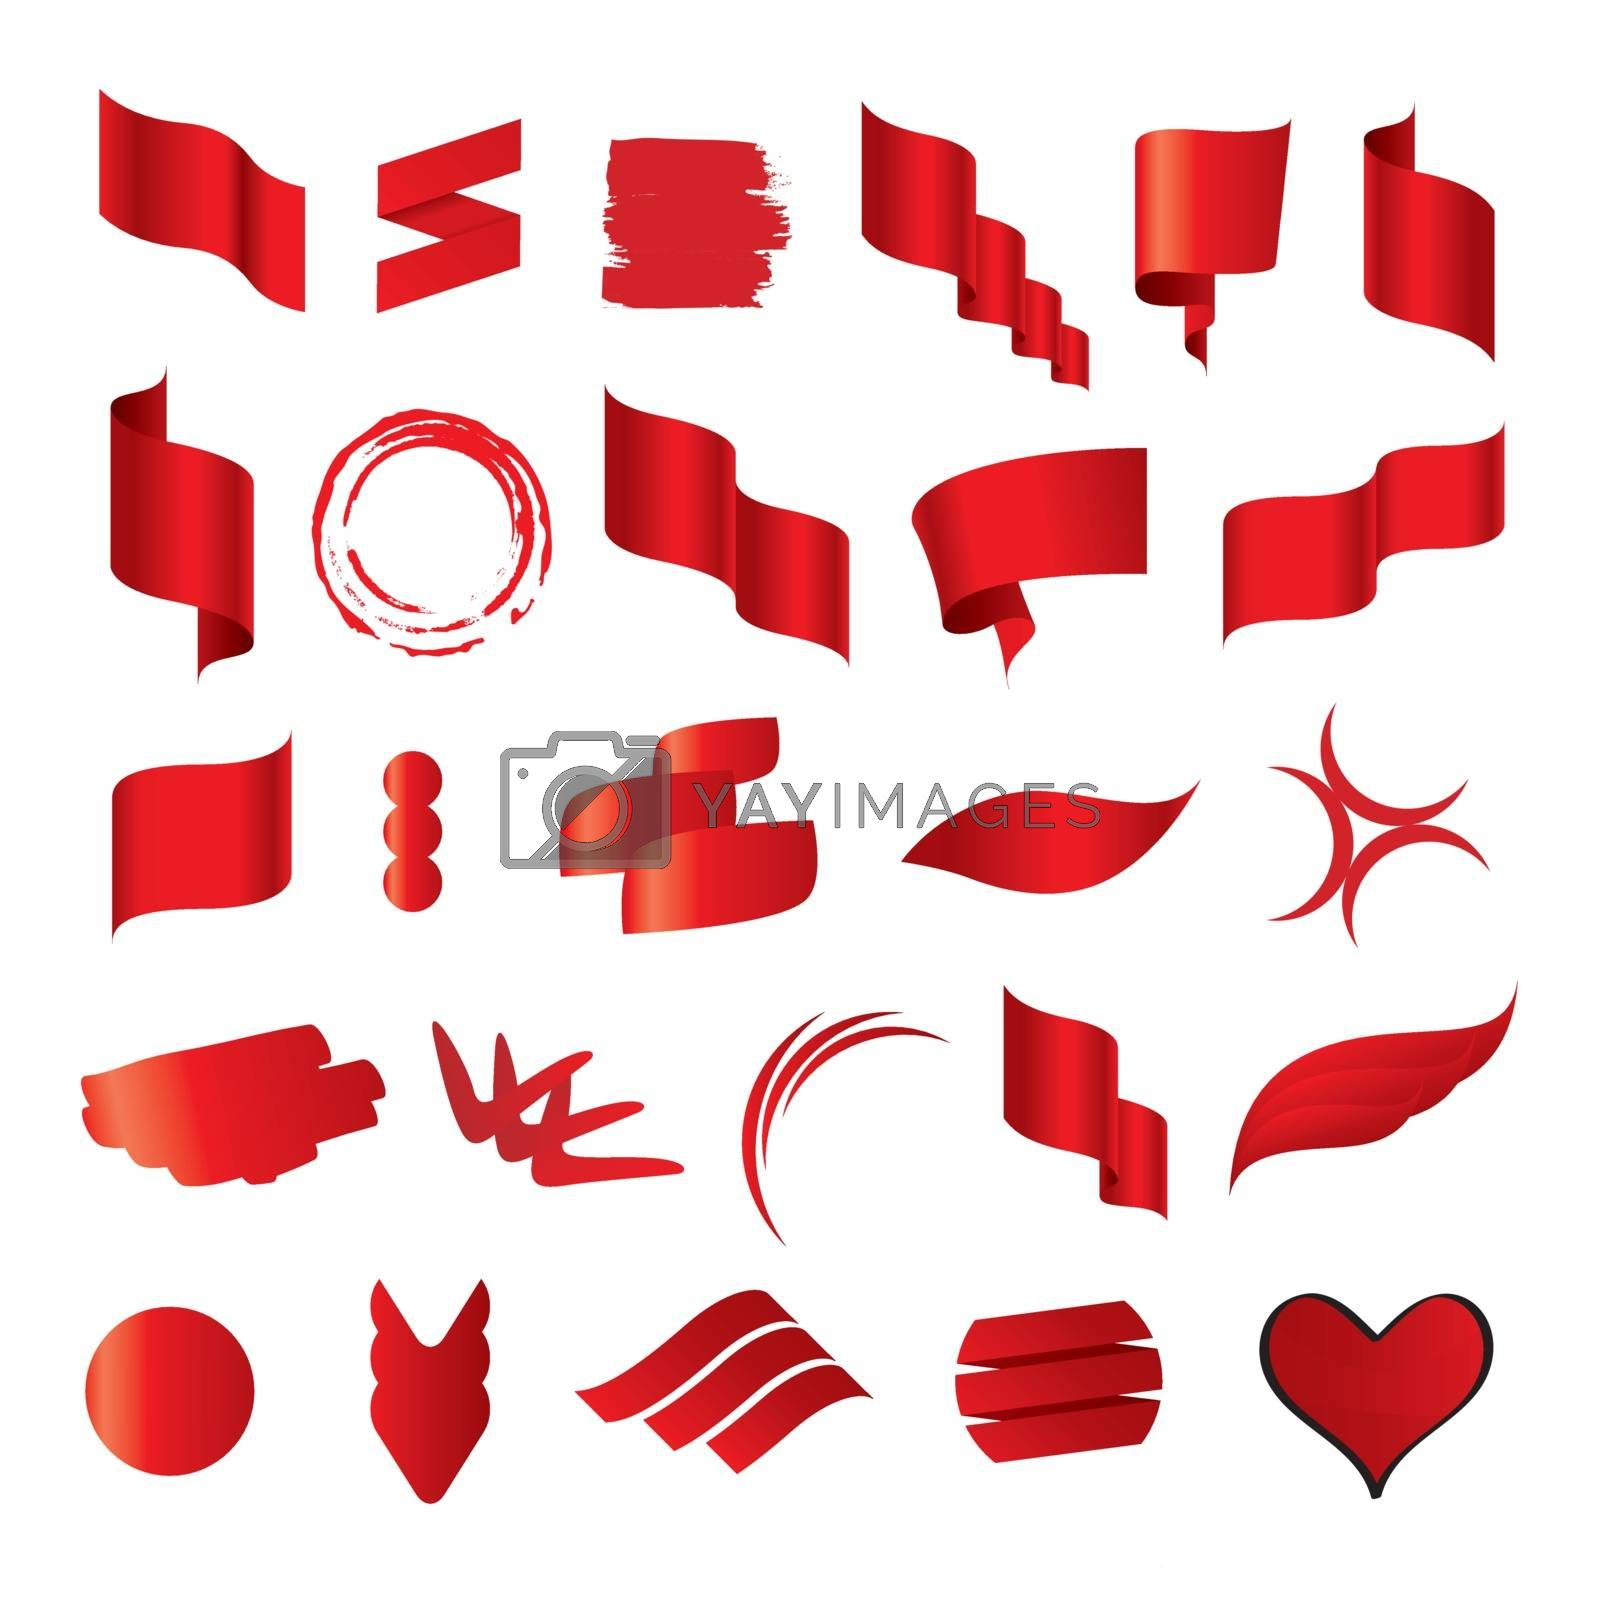 Biggest collection of vector red flags